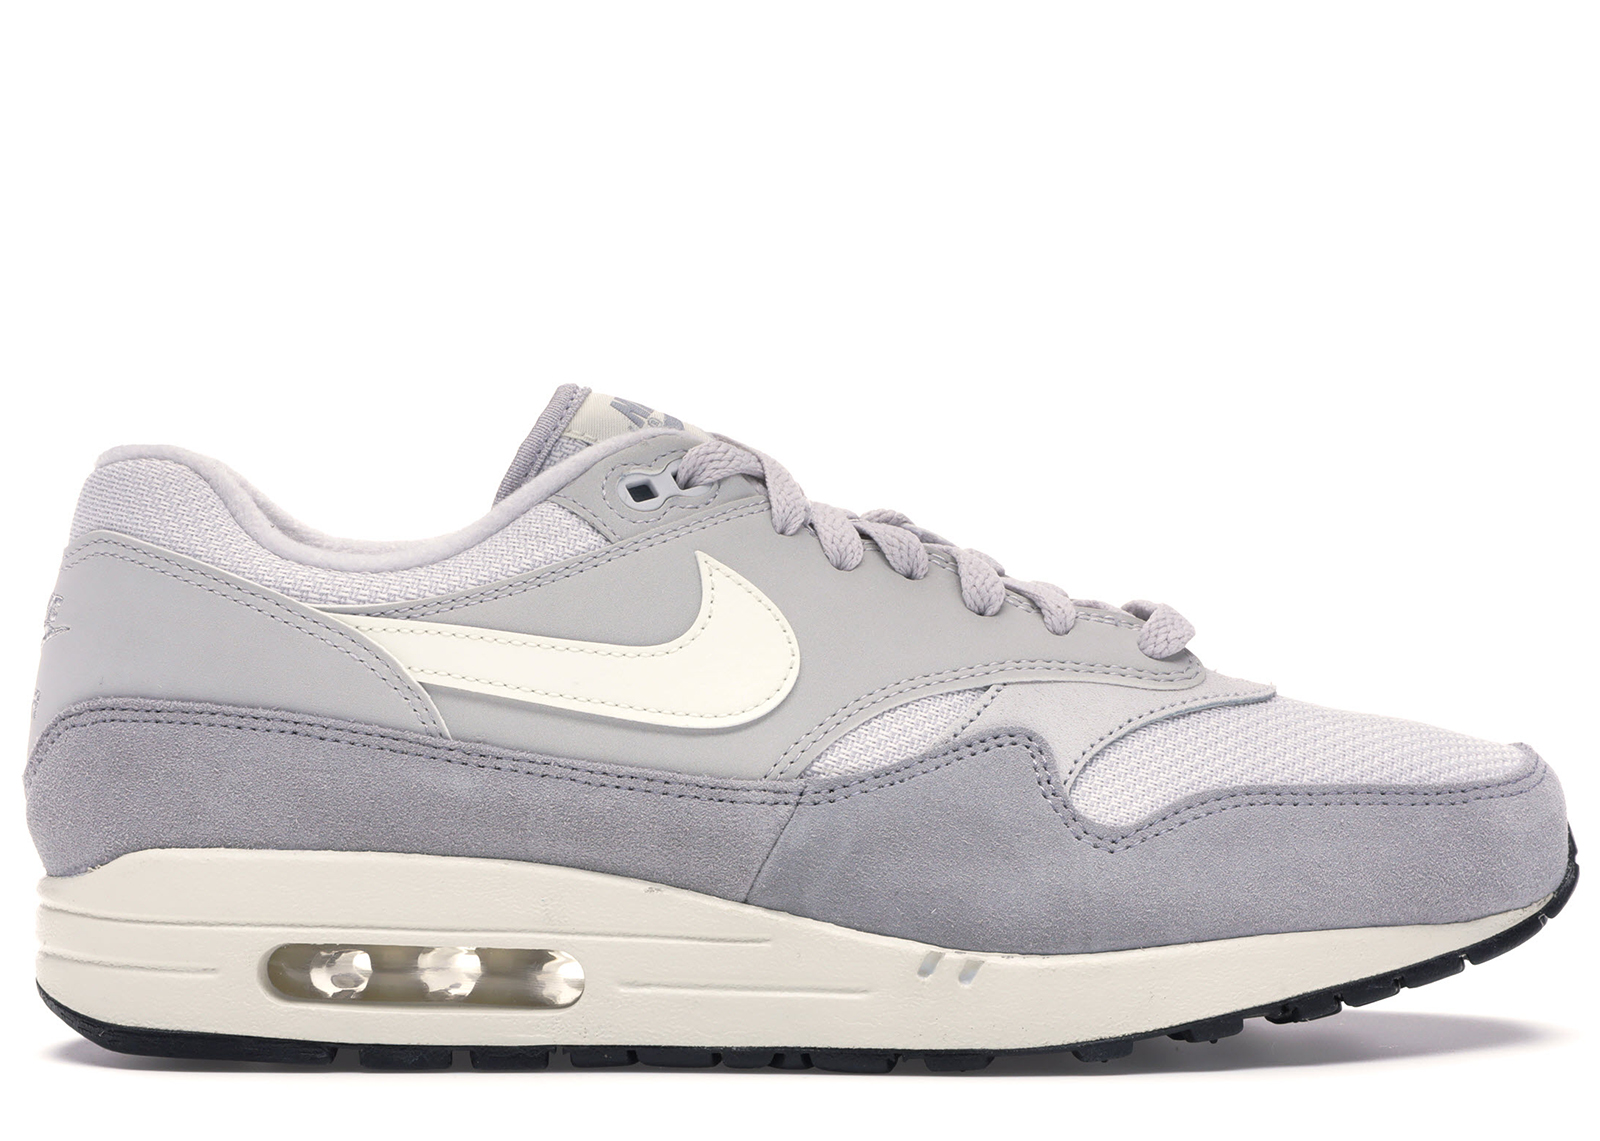 Buy Nike Air Max 1 Shoes & Deadstock Sneakers